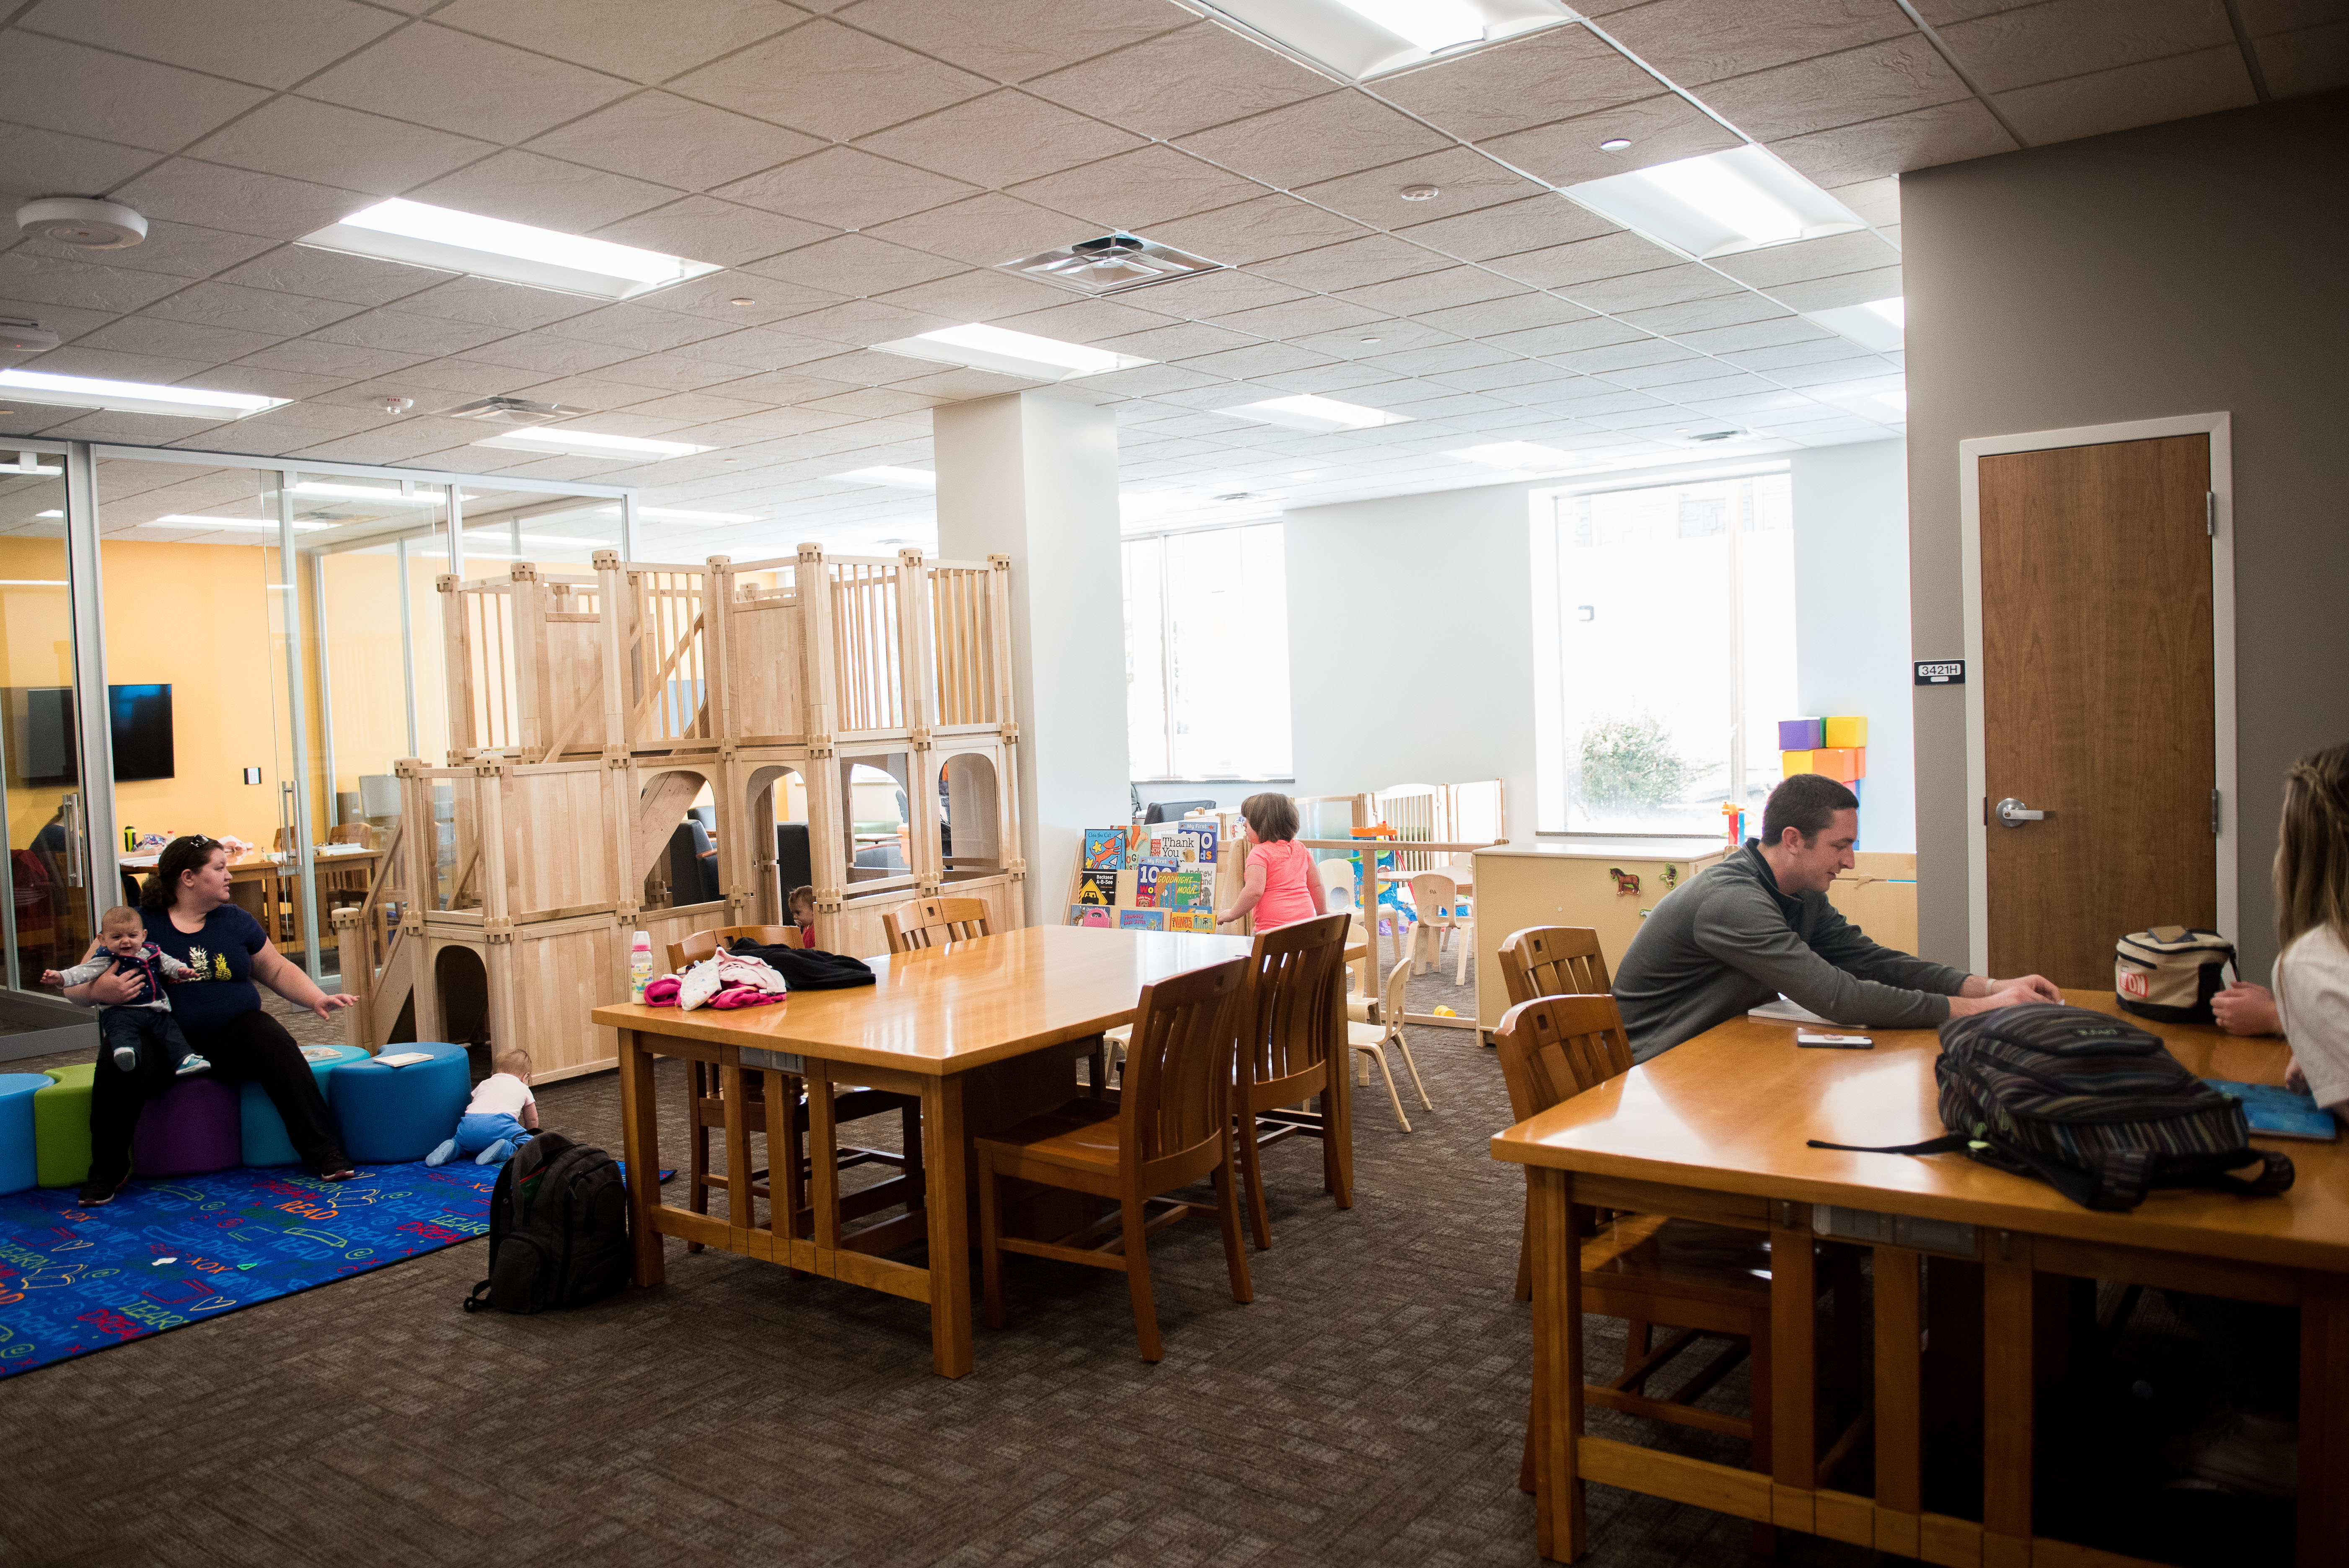 BYU Supports Young Parents With New Family Friendly Study Room